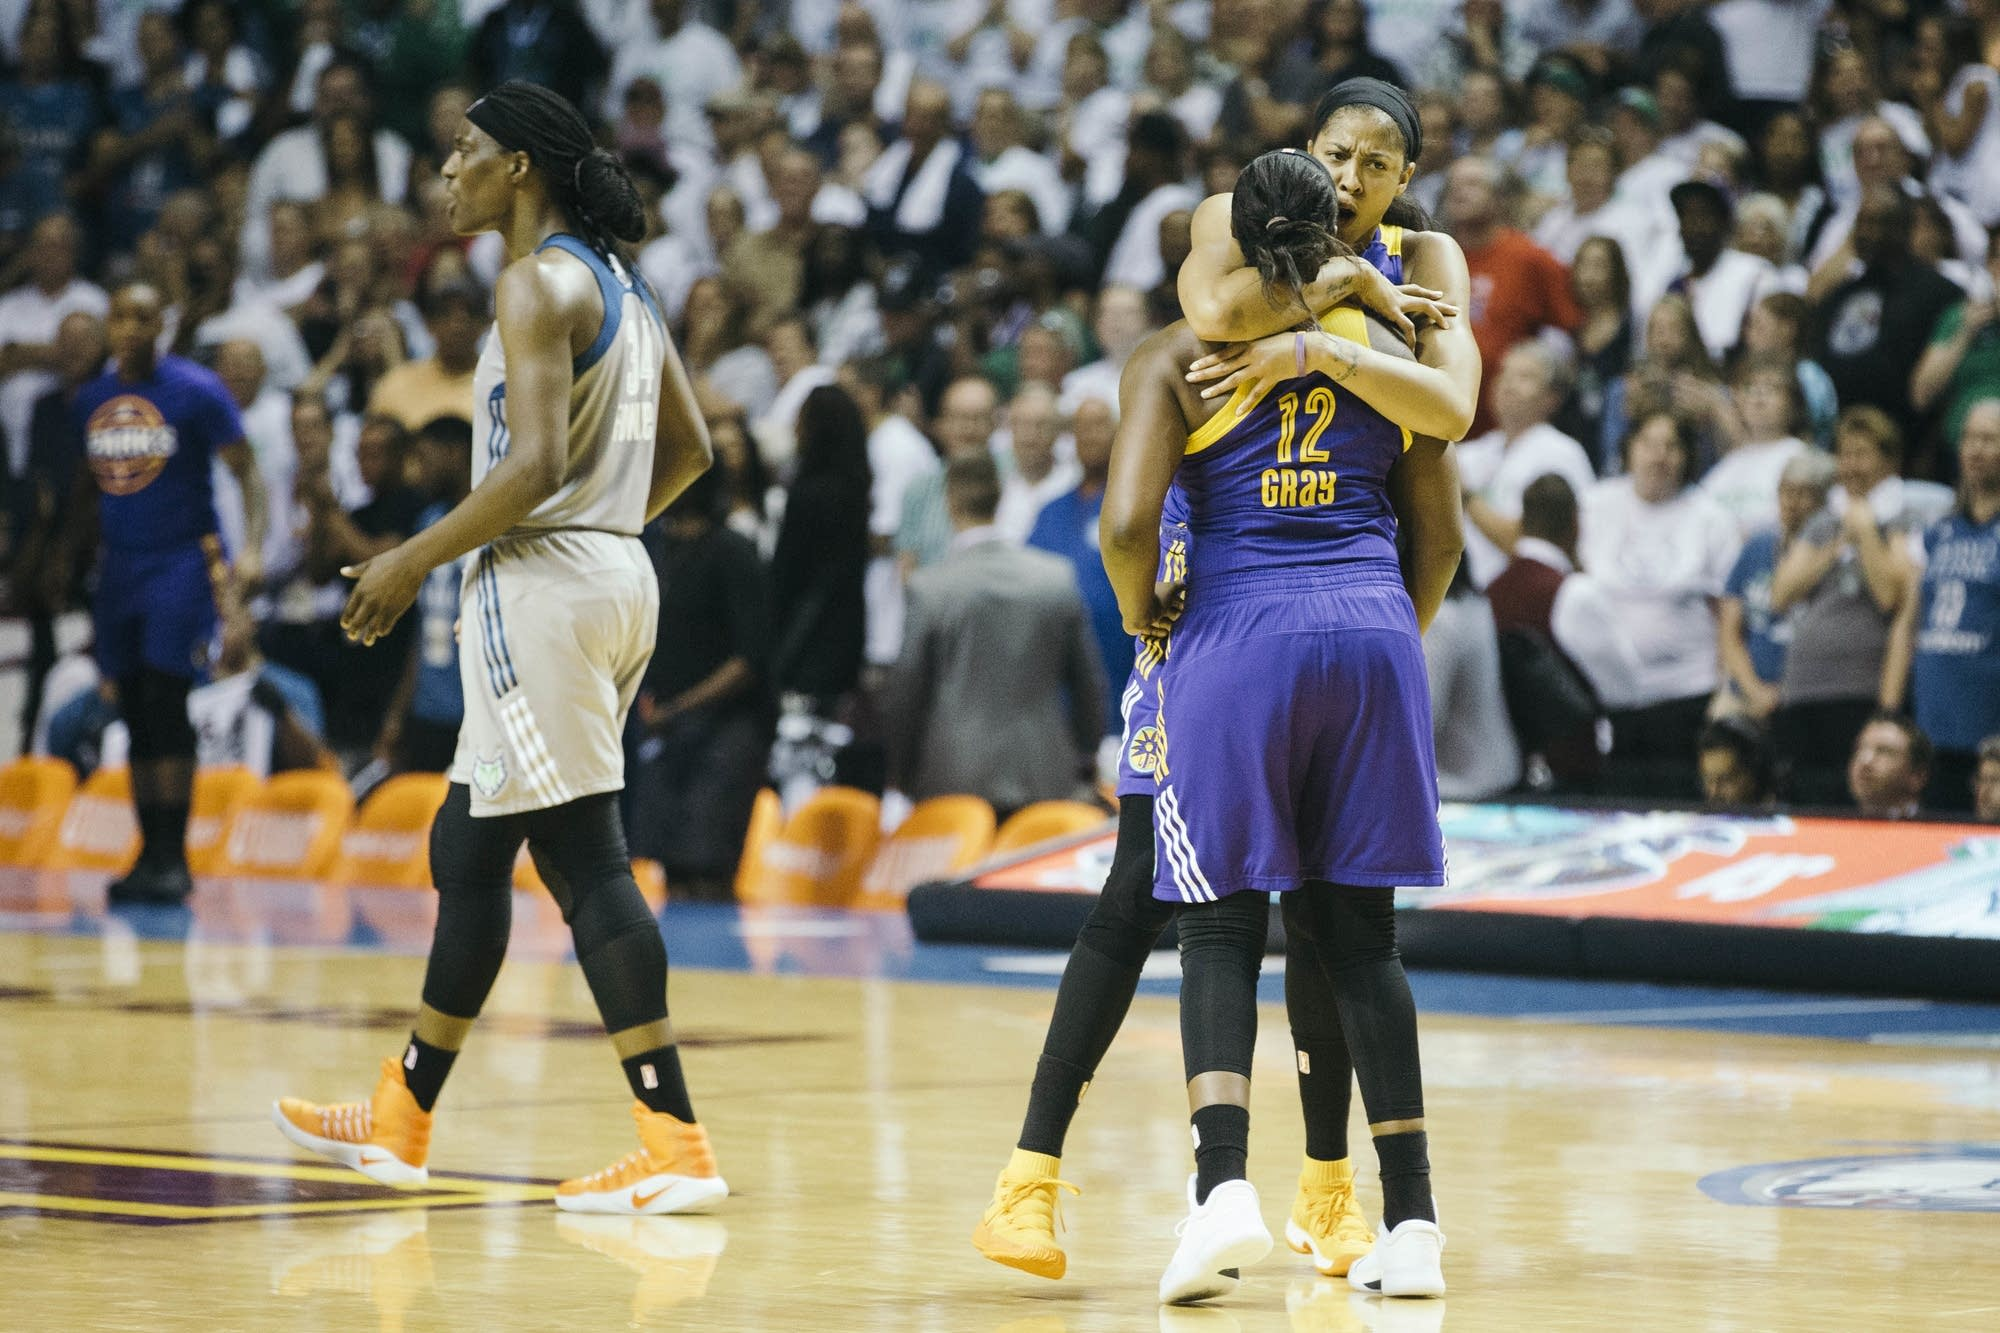 Two LA Sparks players celebrate after winning game 1.